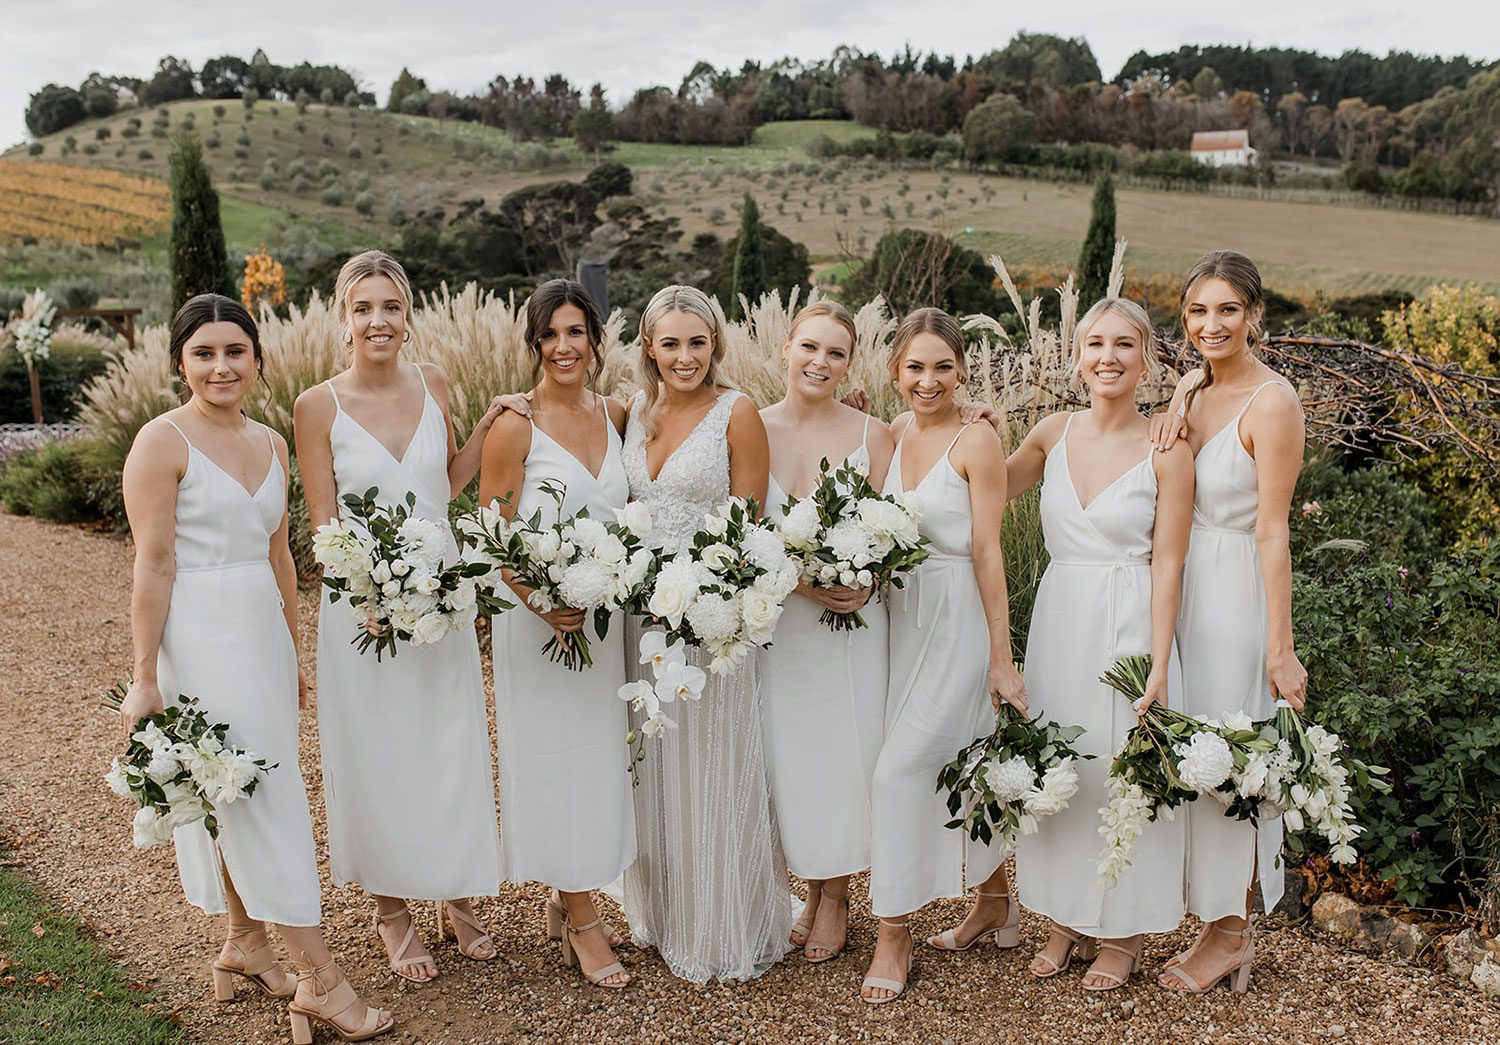 Bride wearing bespoke fitted V-neck gown in beaded lace with front split and sheer beaded overlay by Vinka bridal boutique NZ- with bridesmaids with view behind